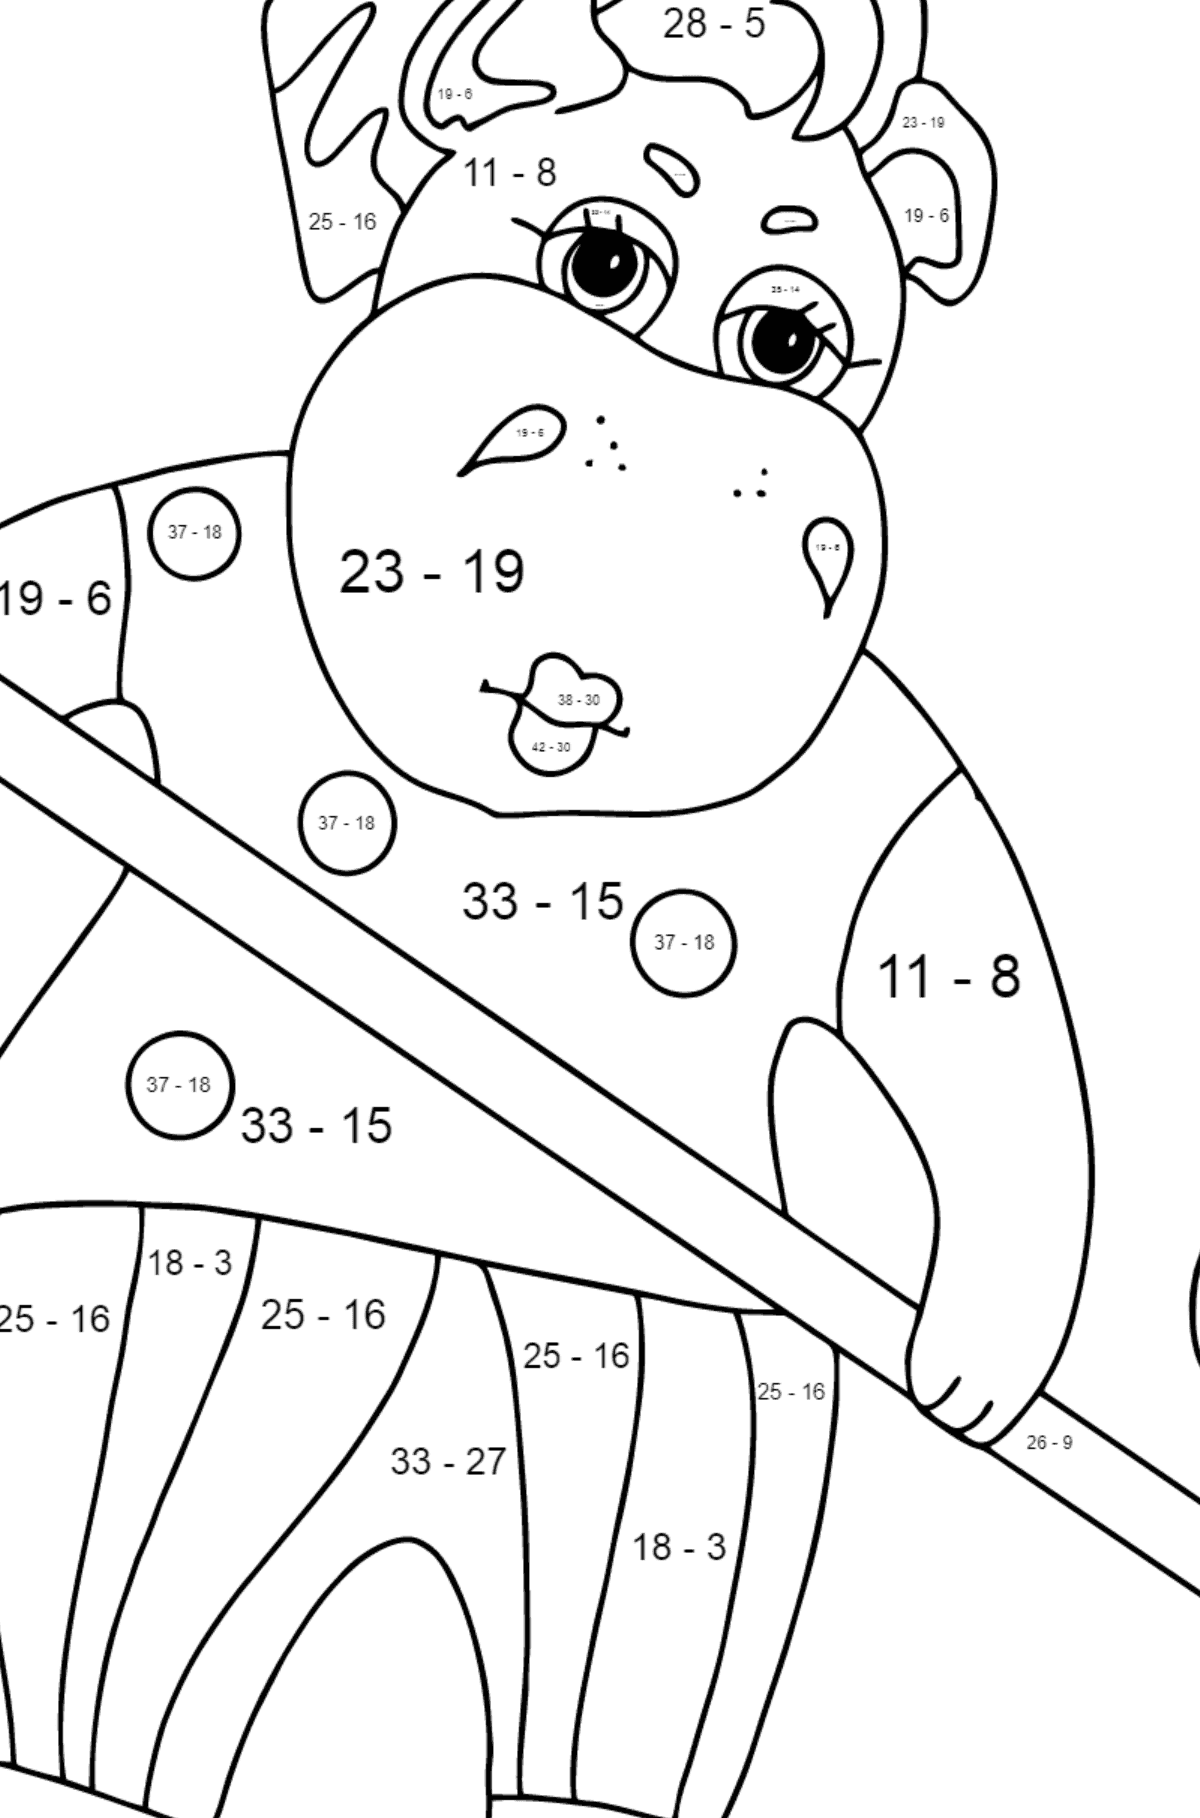 Coloring Page - A Hippo is Sweeping Autumn Leaves for Kids  - Color by Number Substraction